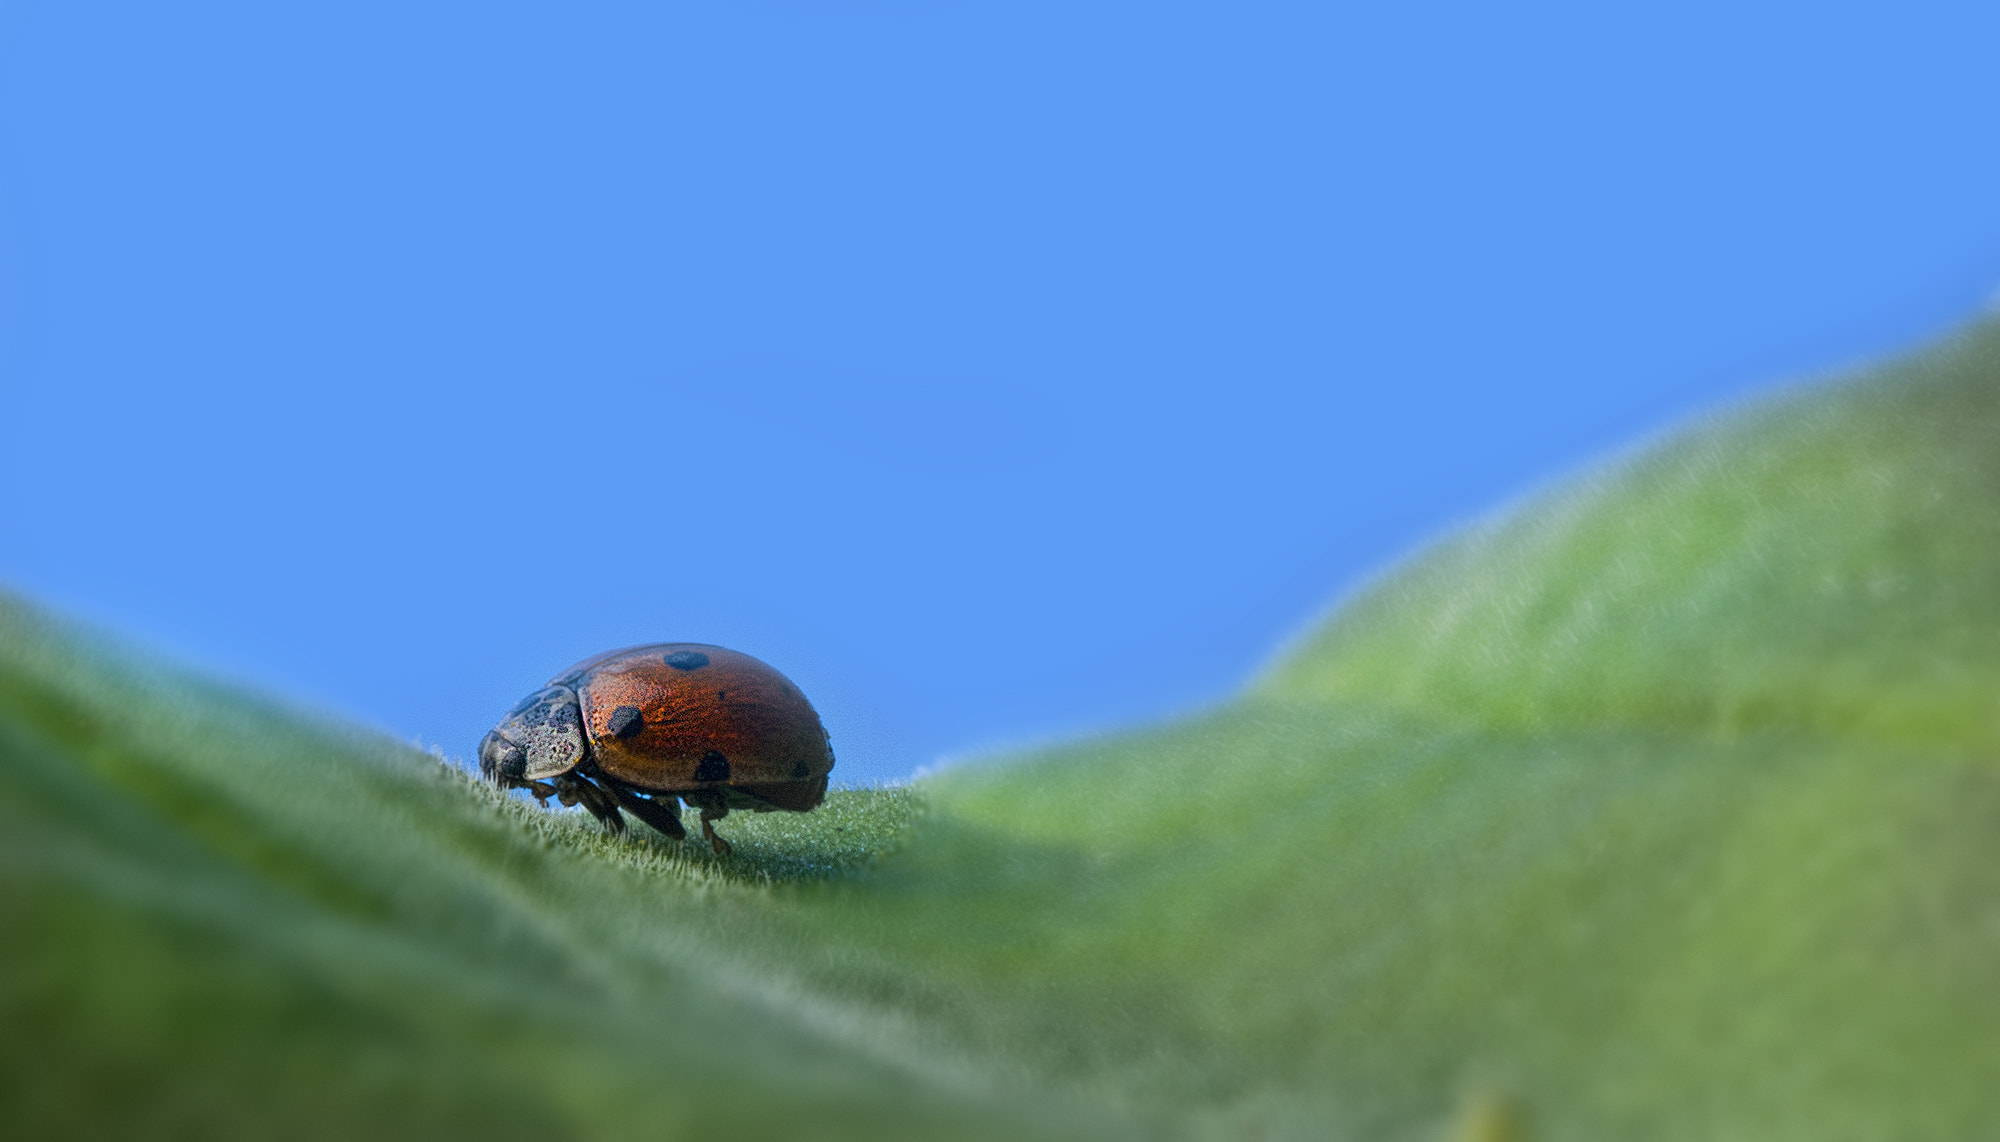 Photograph Lady Bug by Mikael Sundberg on 500px